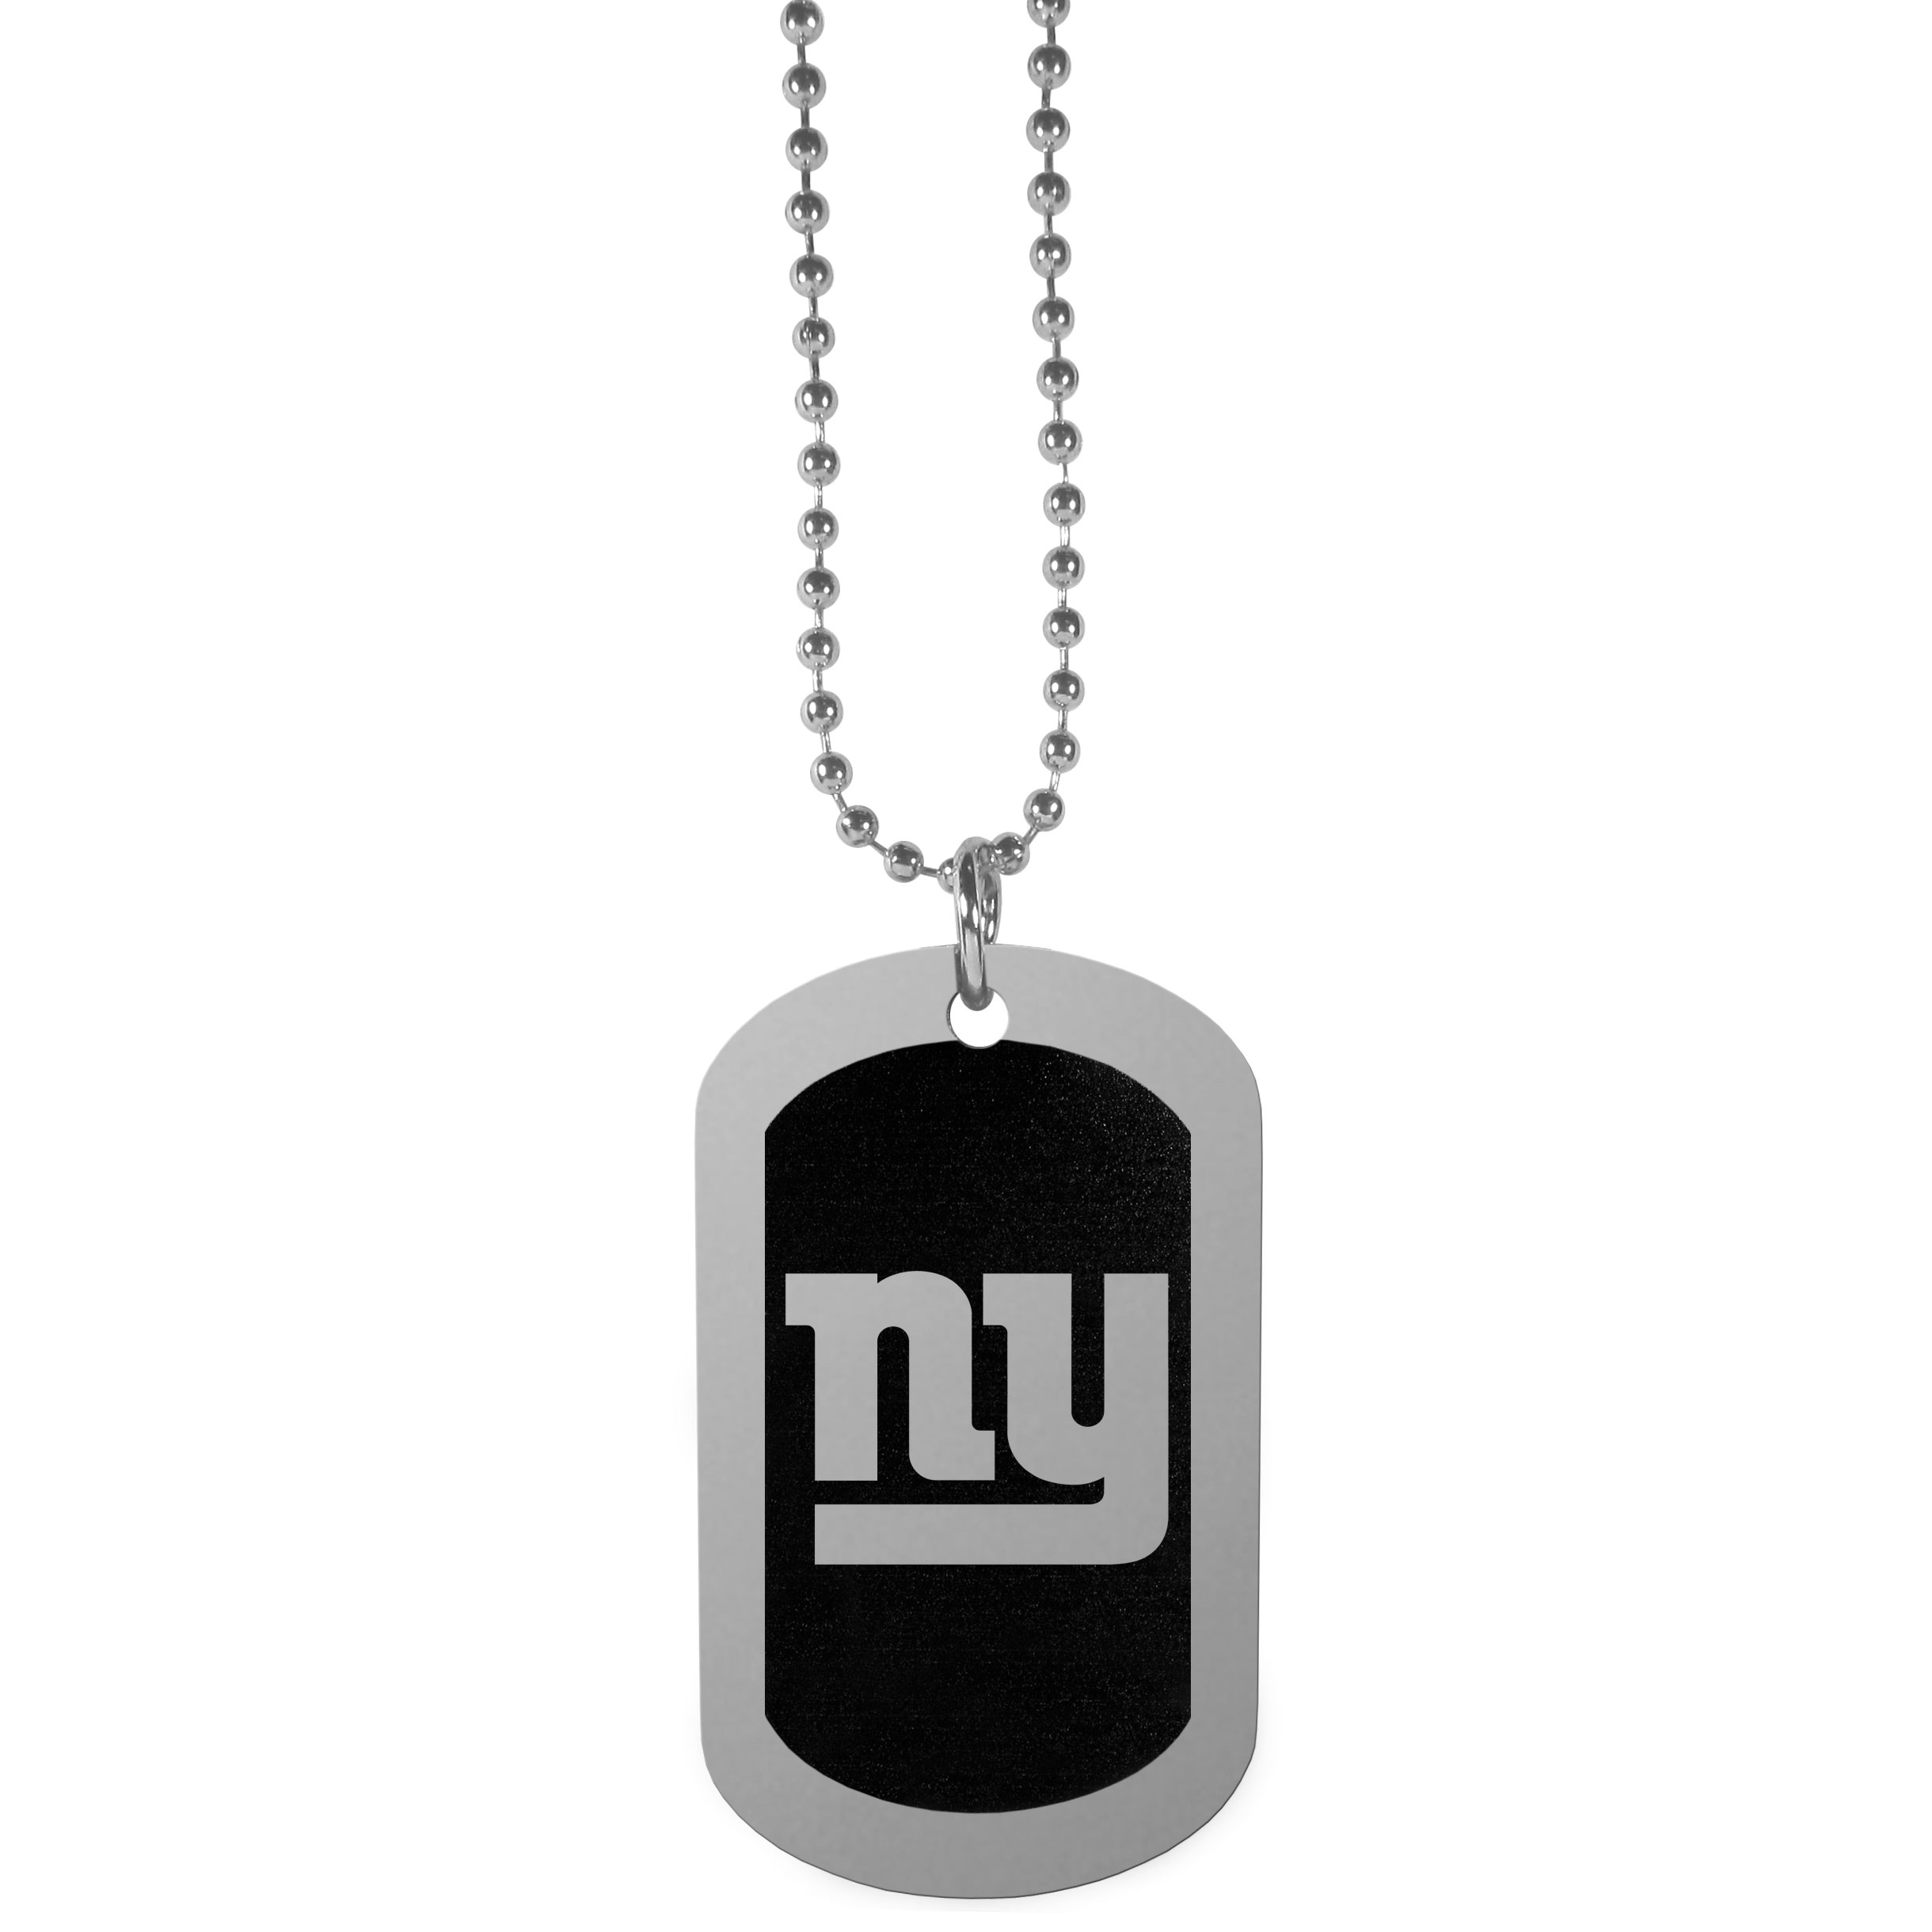 New York Giants Chrome Tag Necklace - Dog tag necklaces are a fashion statement that is here to stay. The sporty version of the classic tag features a black printed over a high polish tag to create a bold and sporty look. The tag comes on a 26 inch ball chain with a ball and joint clasp. Any New York Giants would be proud to wear this attractive fashion accessory.